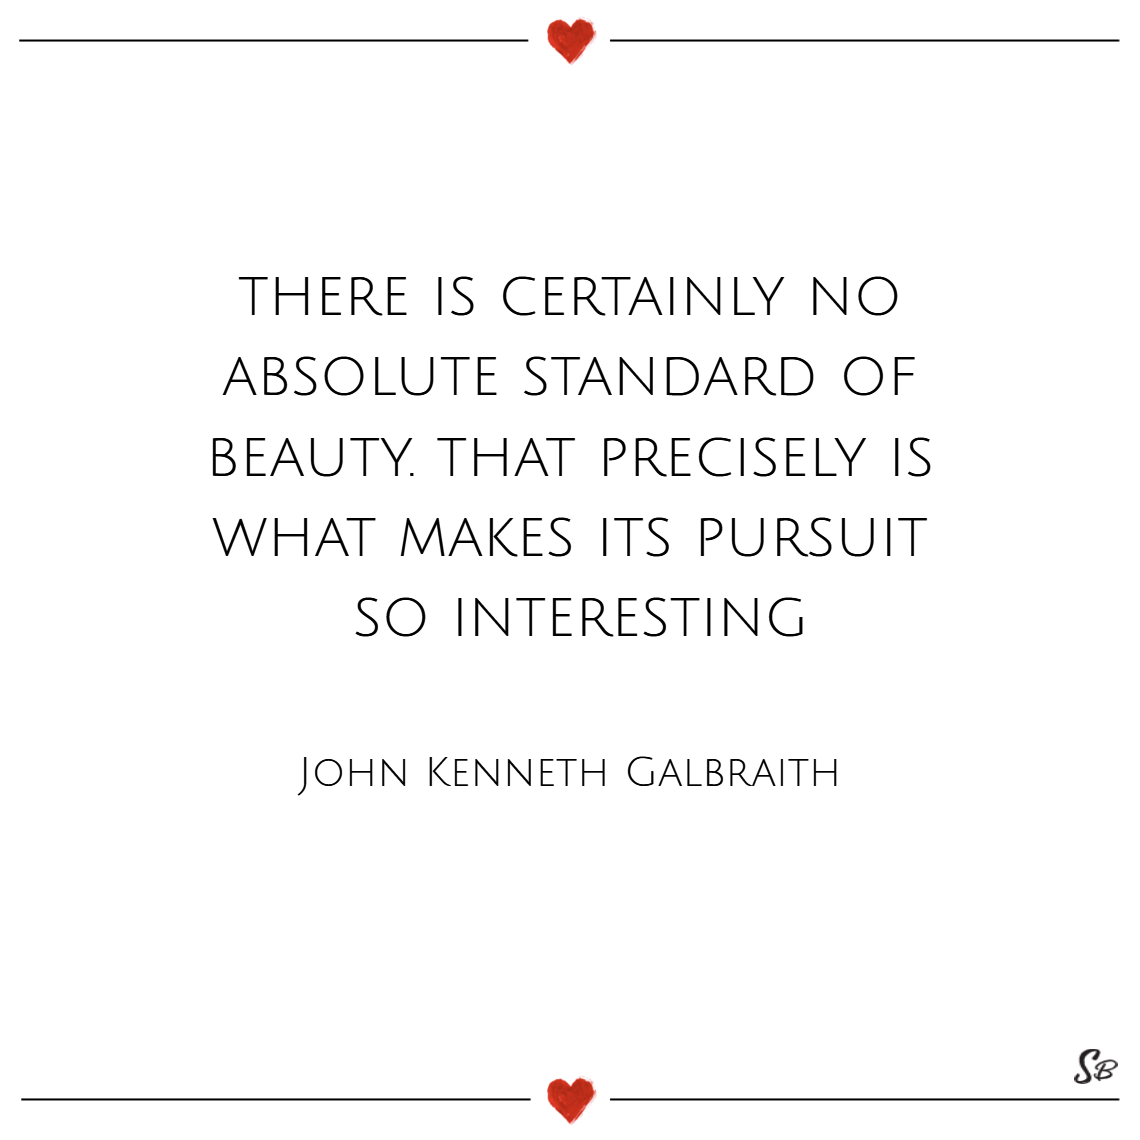 There is certainly no absolute standard of beauty. that precisely is what makes its pursuit so interesting. – john kenneth galbraith